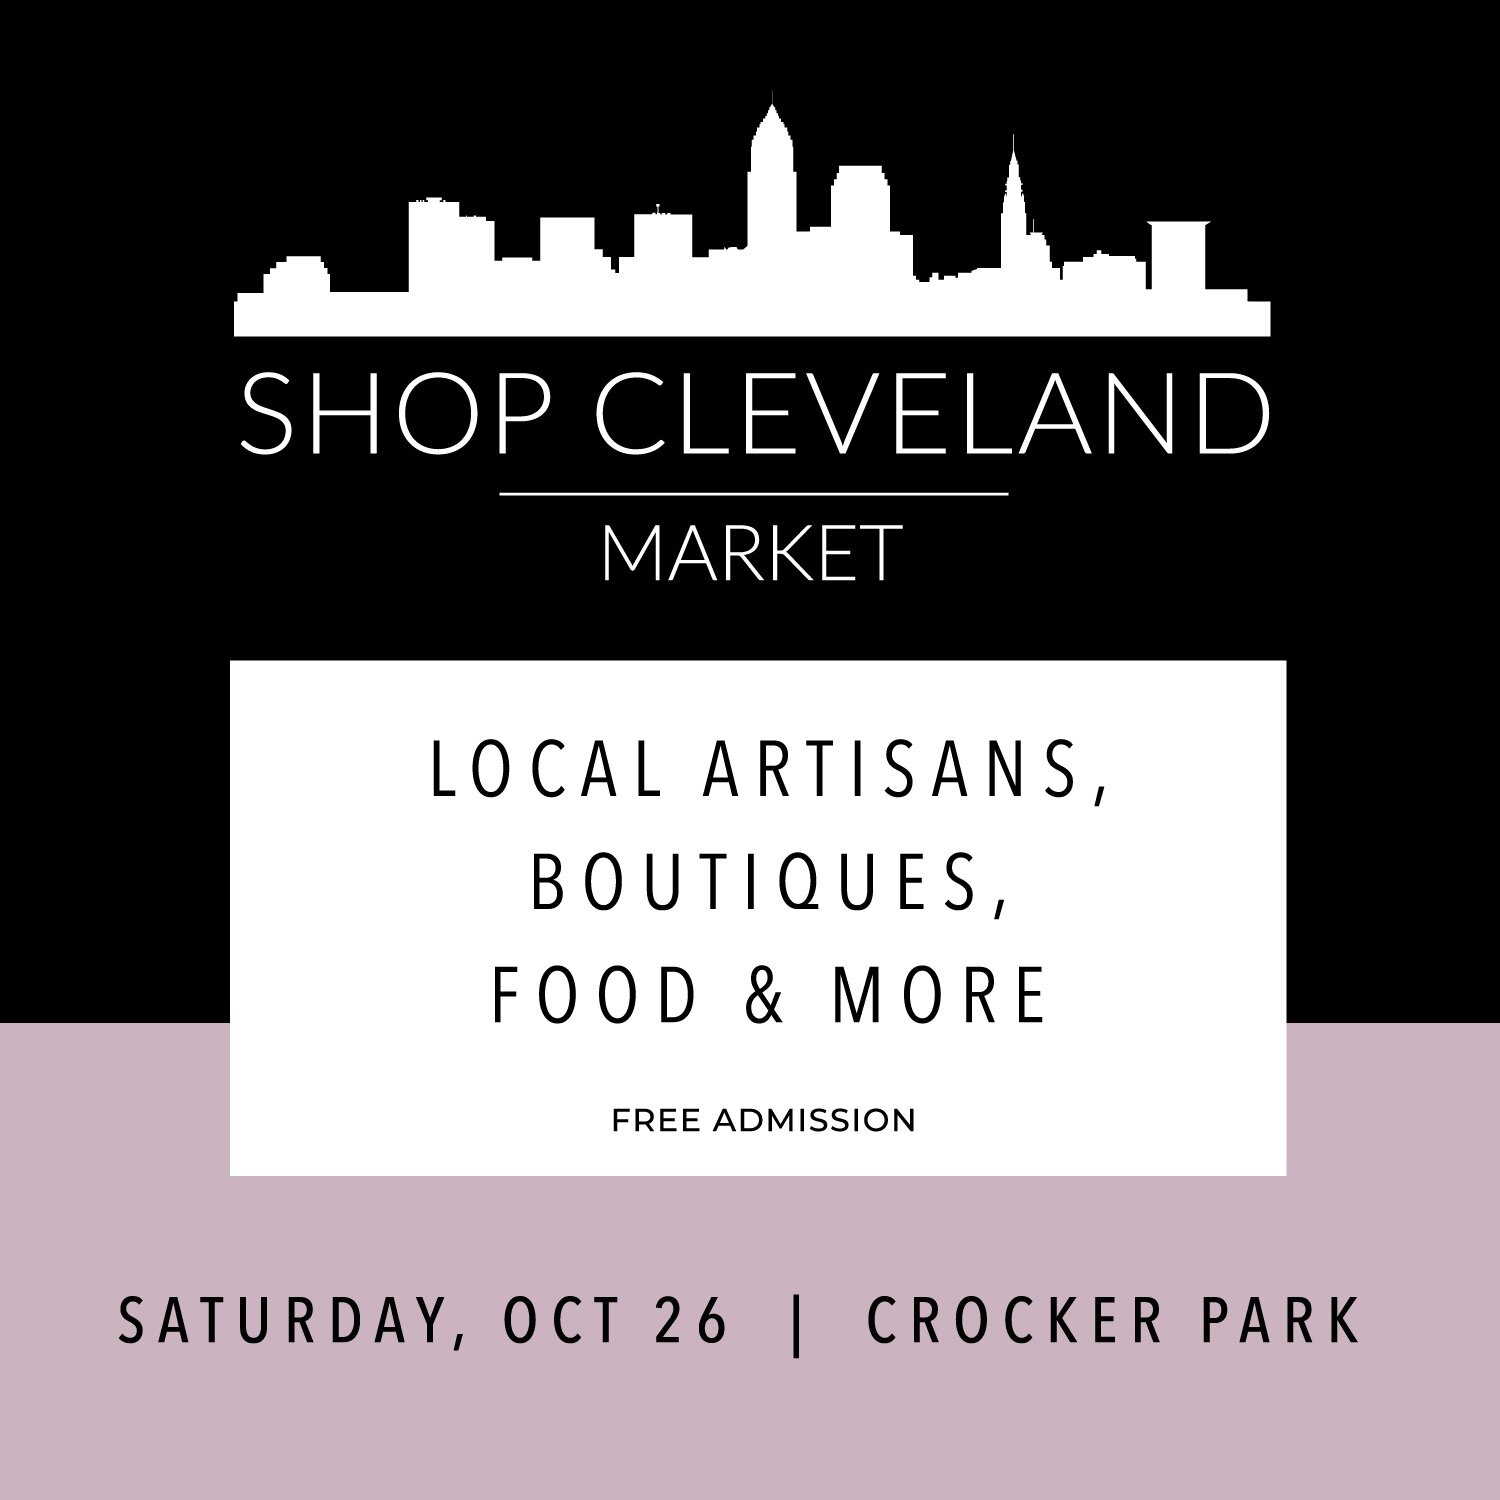 https://www.facebook.com/pages/category/Community/Shop-Cleveland-Market-1839250709648361/